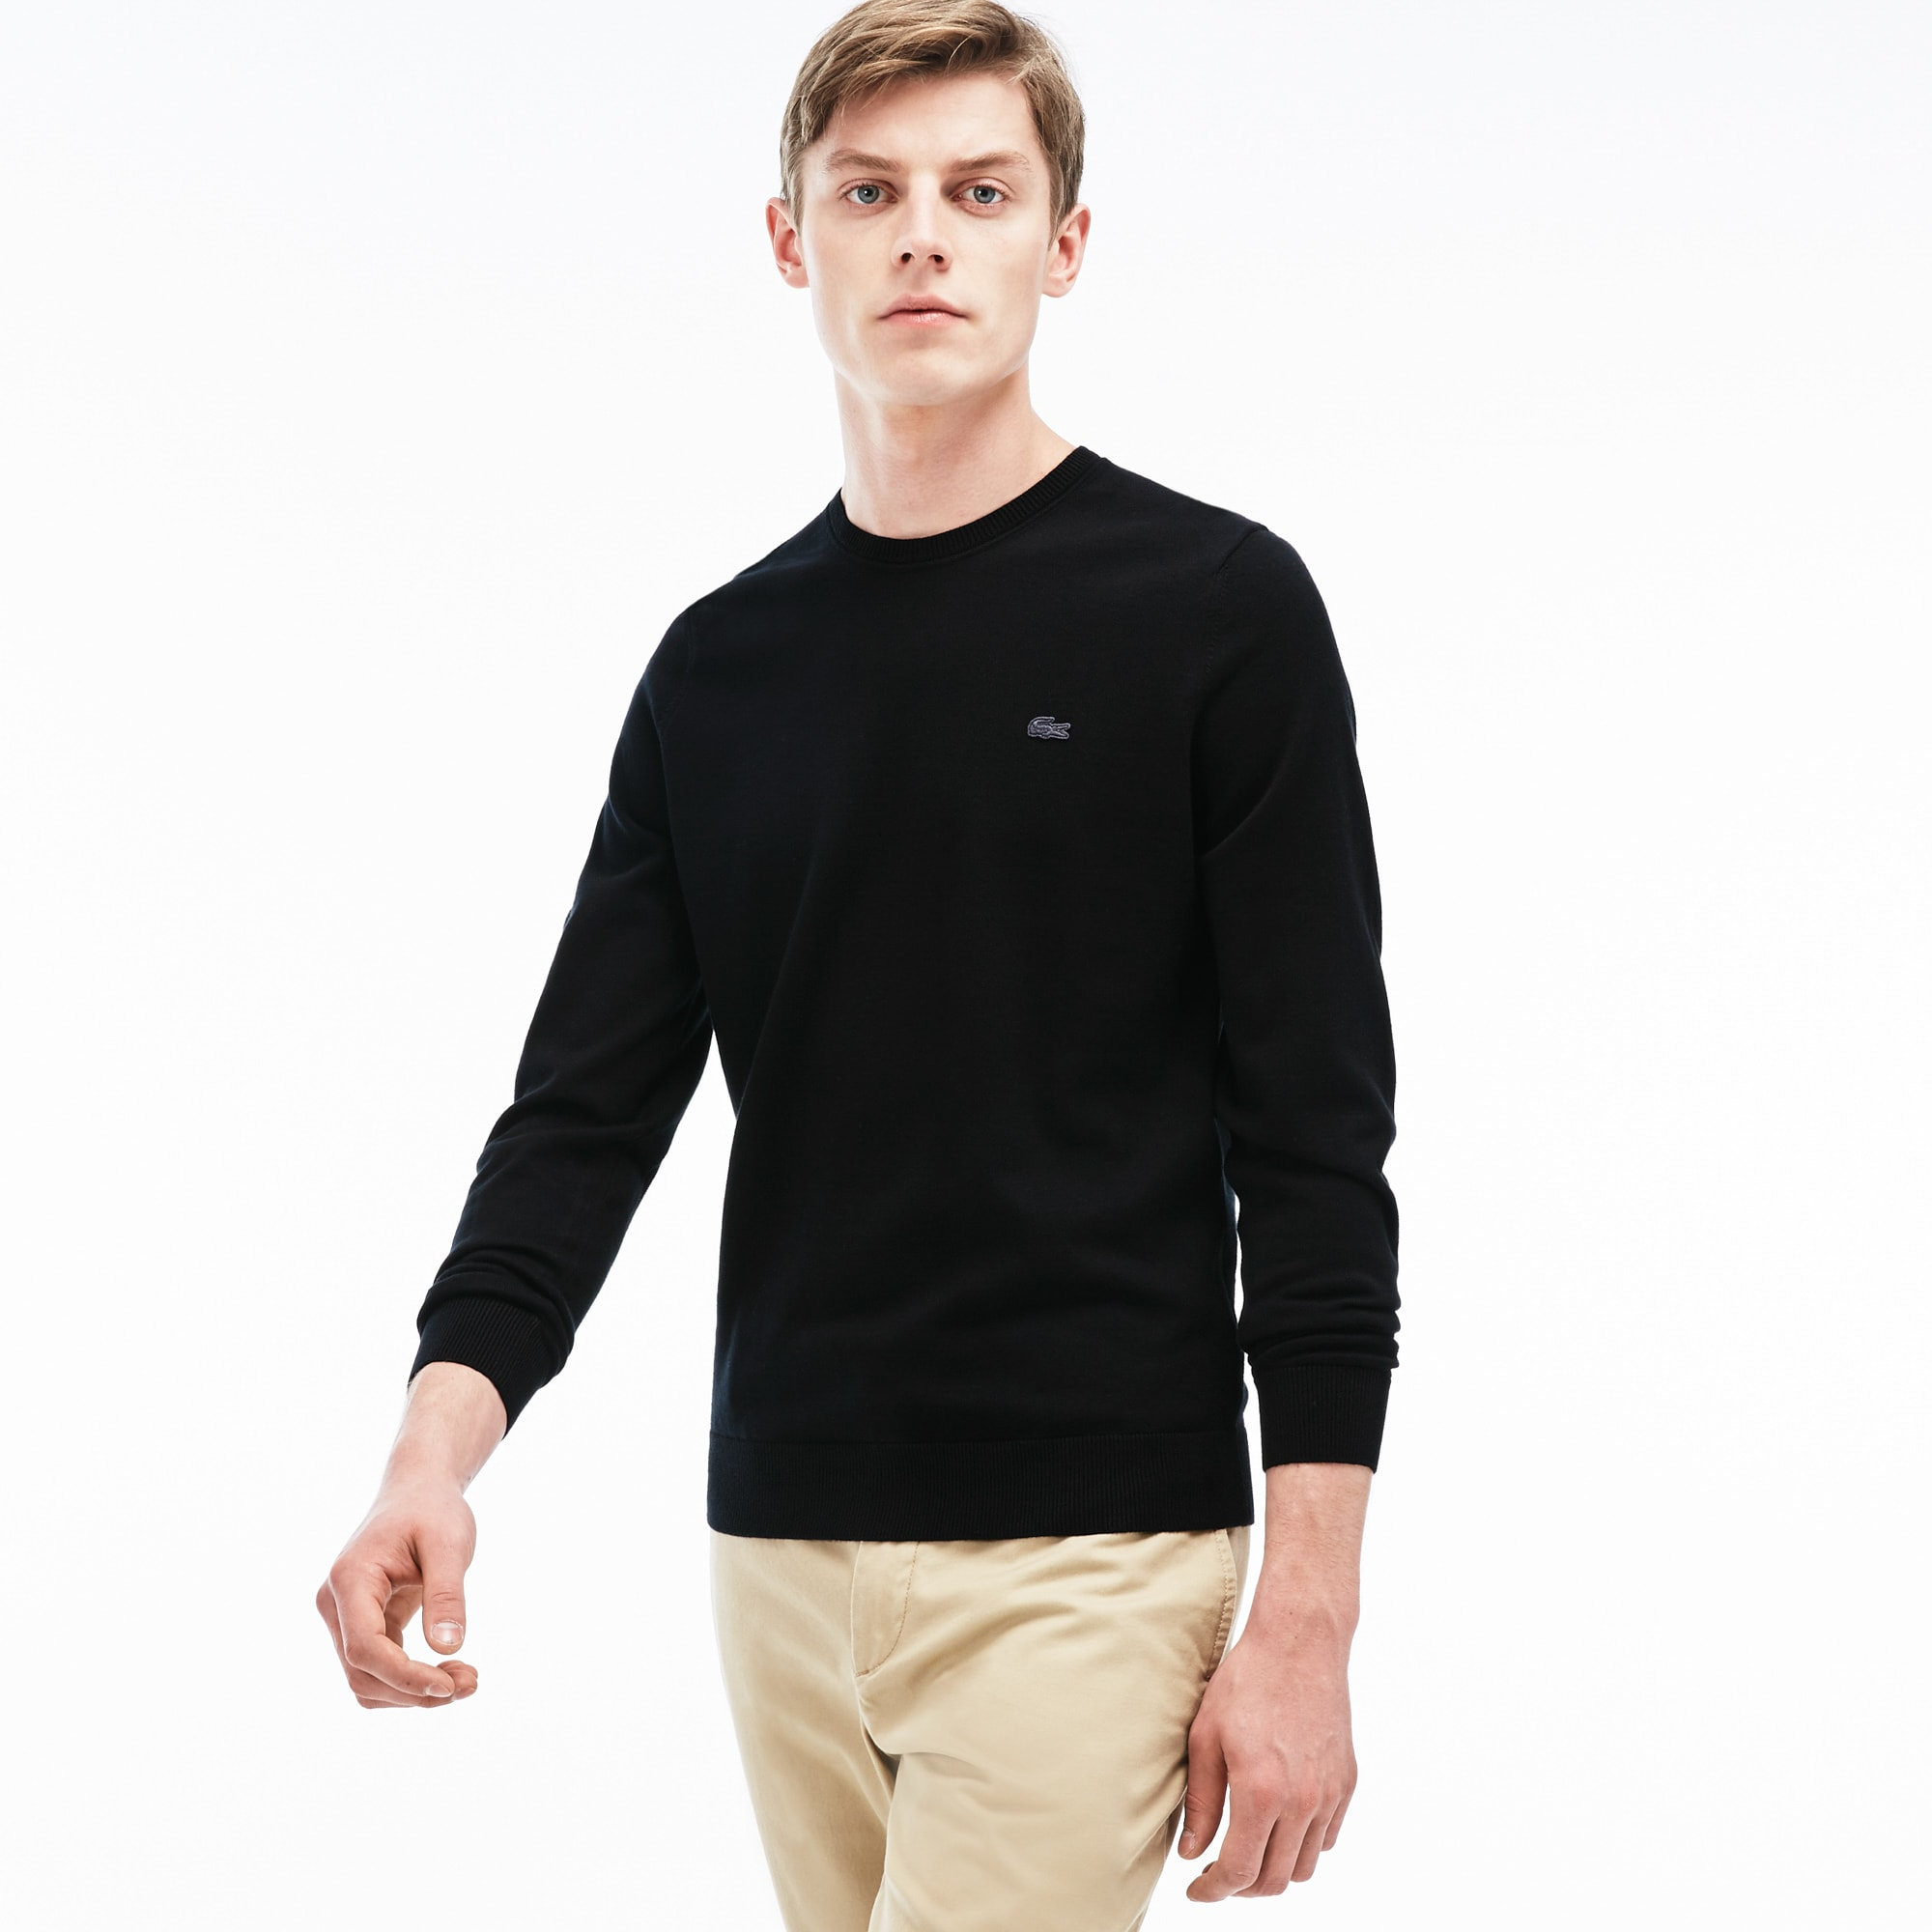 Men's Cotton Jersey Crewneck Sweater